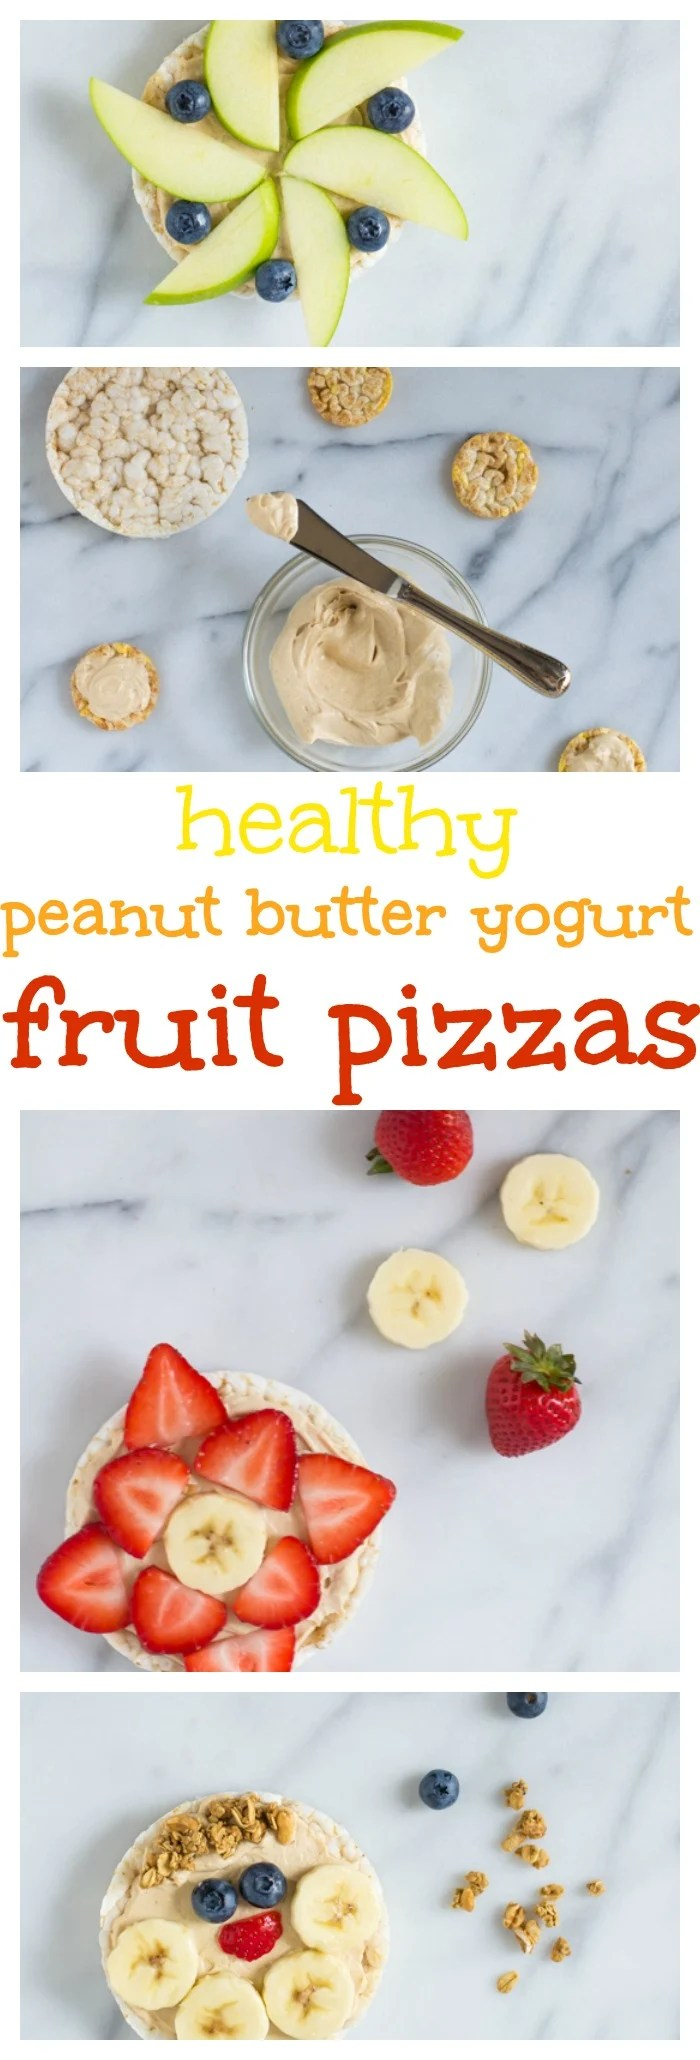 Healthy Peanut Butter-Yogurt Fruit Pizzas // Well-Plated